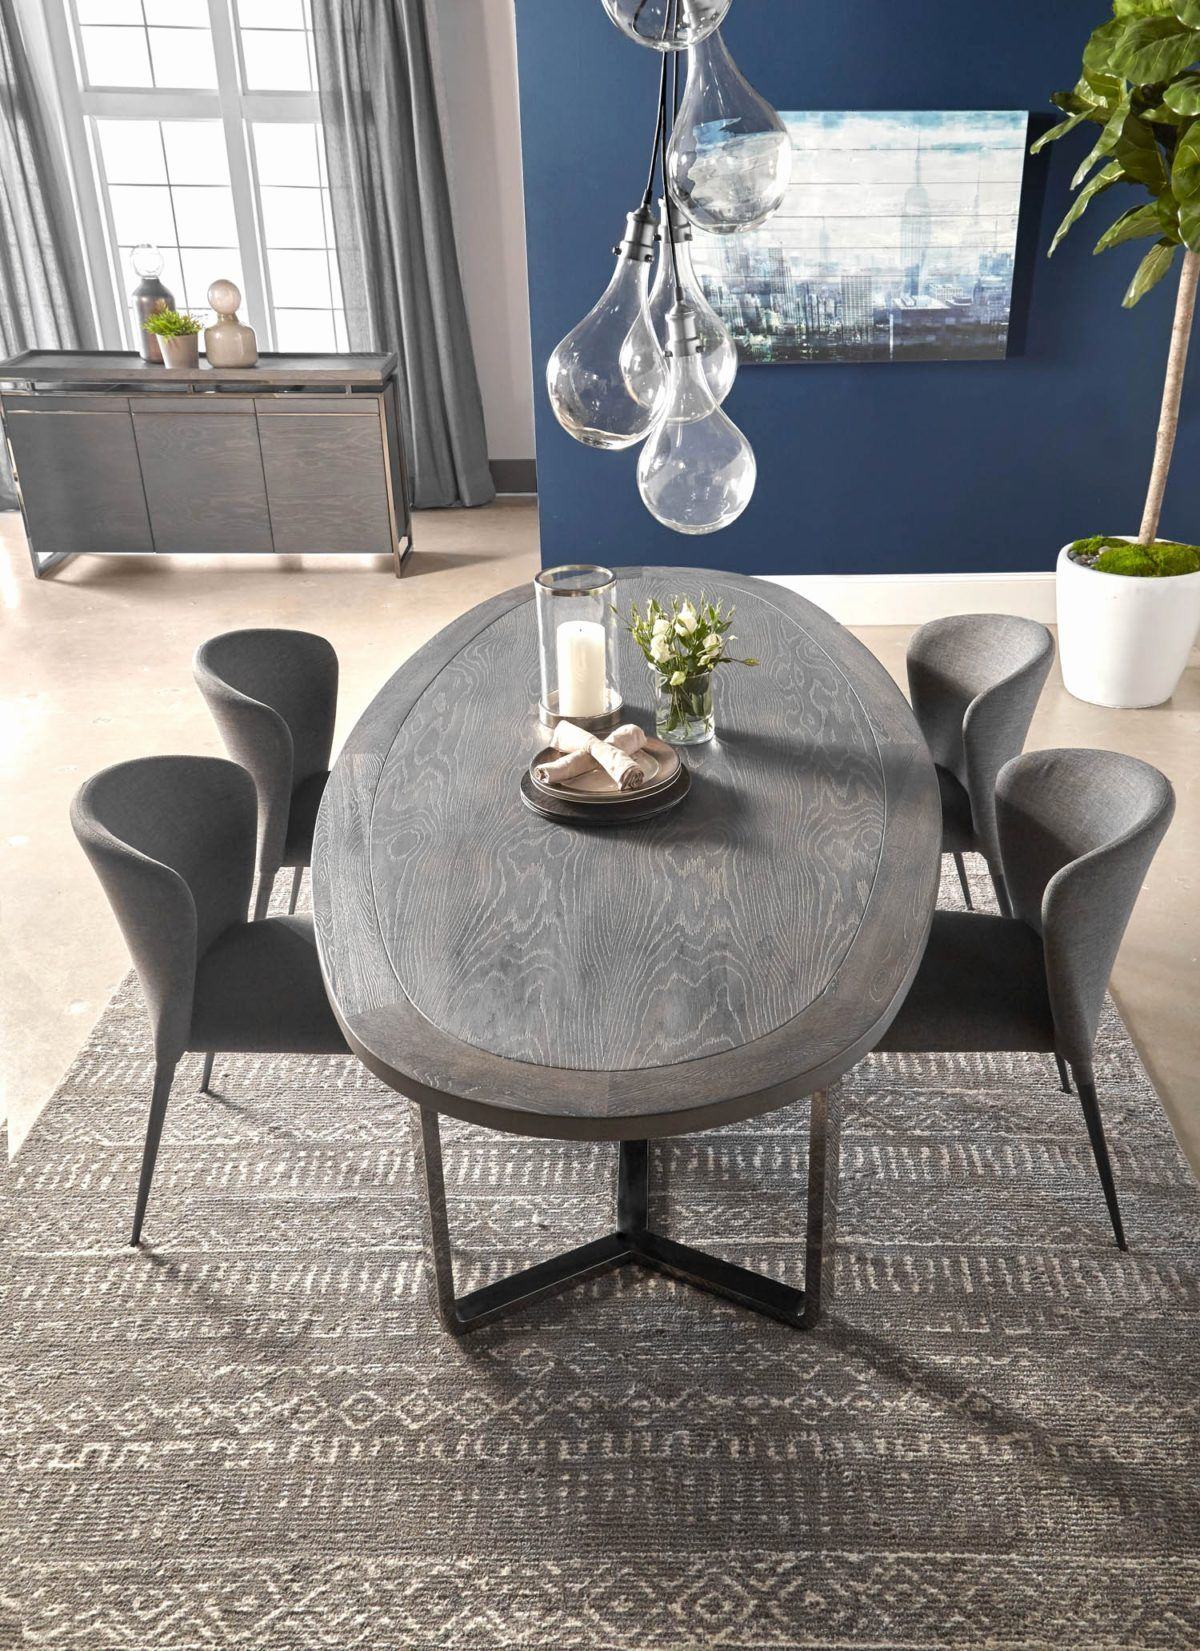 15 oval dining table ideas oval table dining dining table interior design dining room on kitchen interior table id=32336